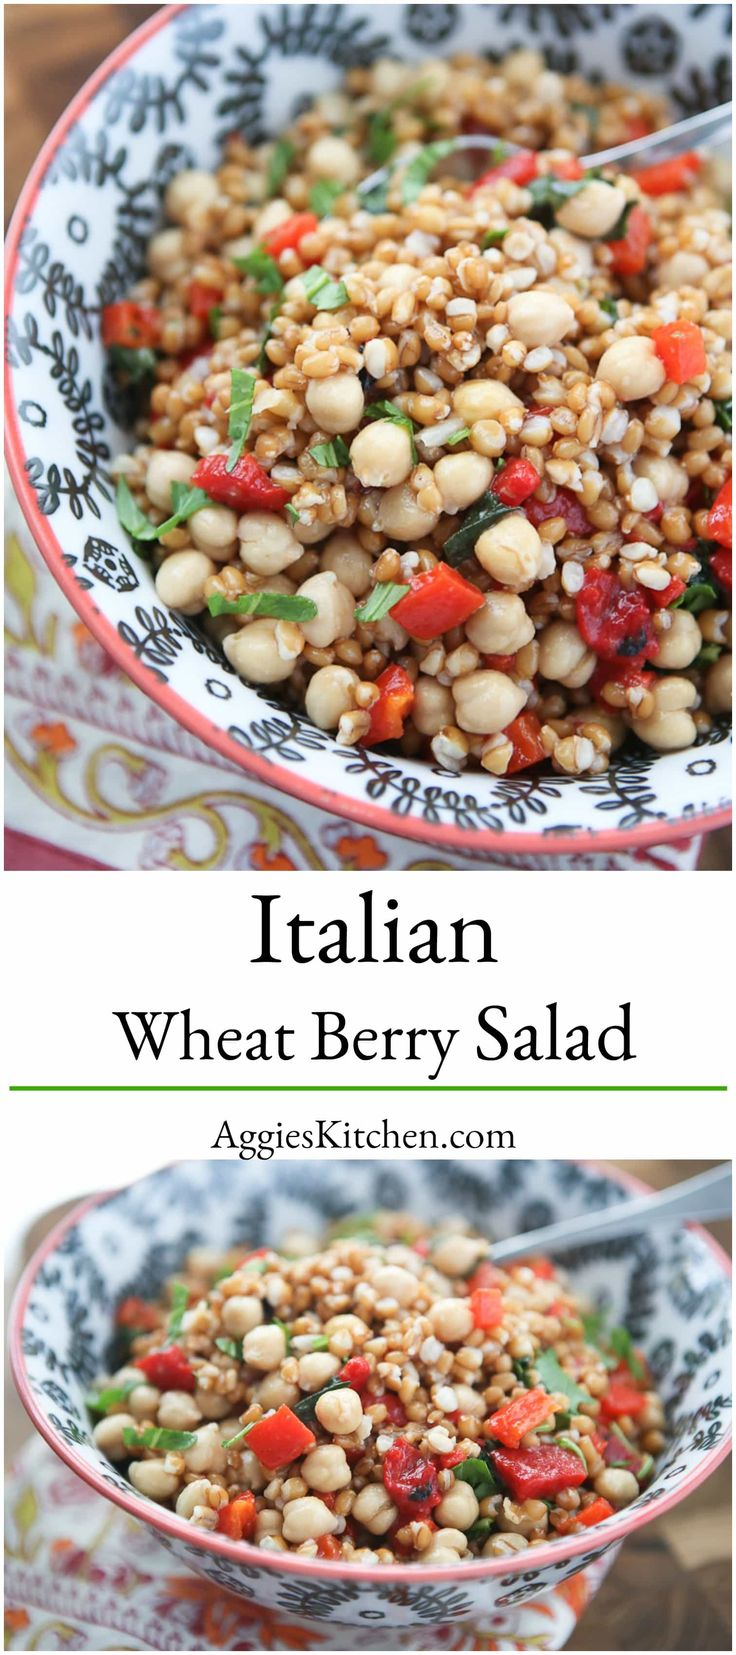 This Italian Wheat Berry Salad is simple, fresh and full of delicious flavor, protein and fiber. Perfect for picnics or barbecues! via @aggieskitchen